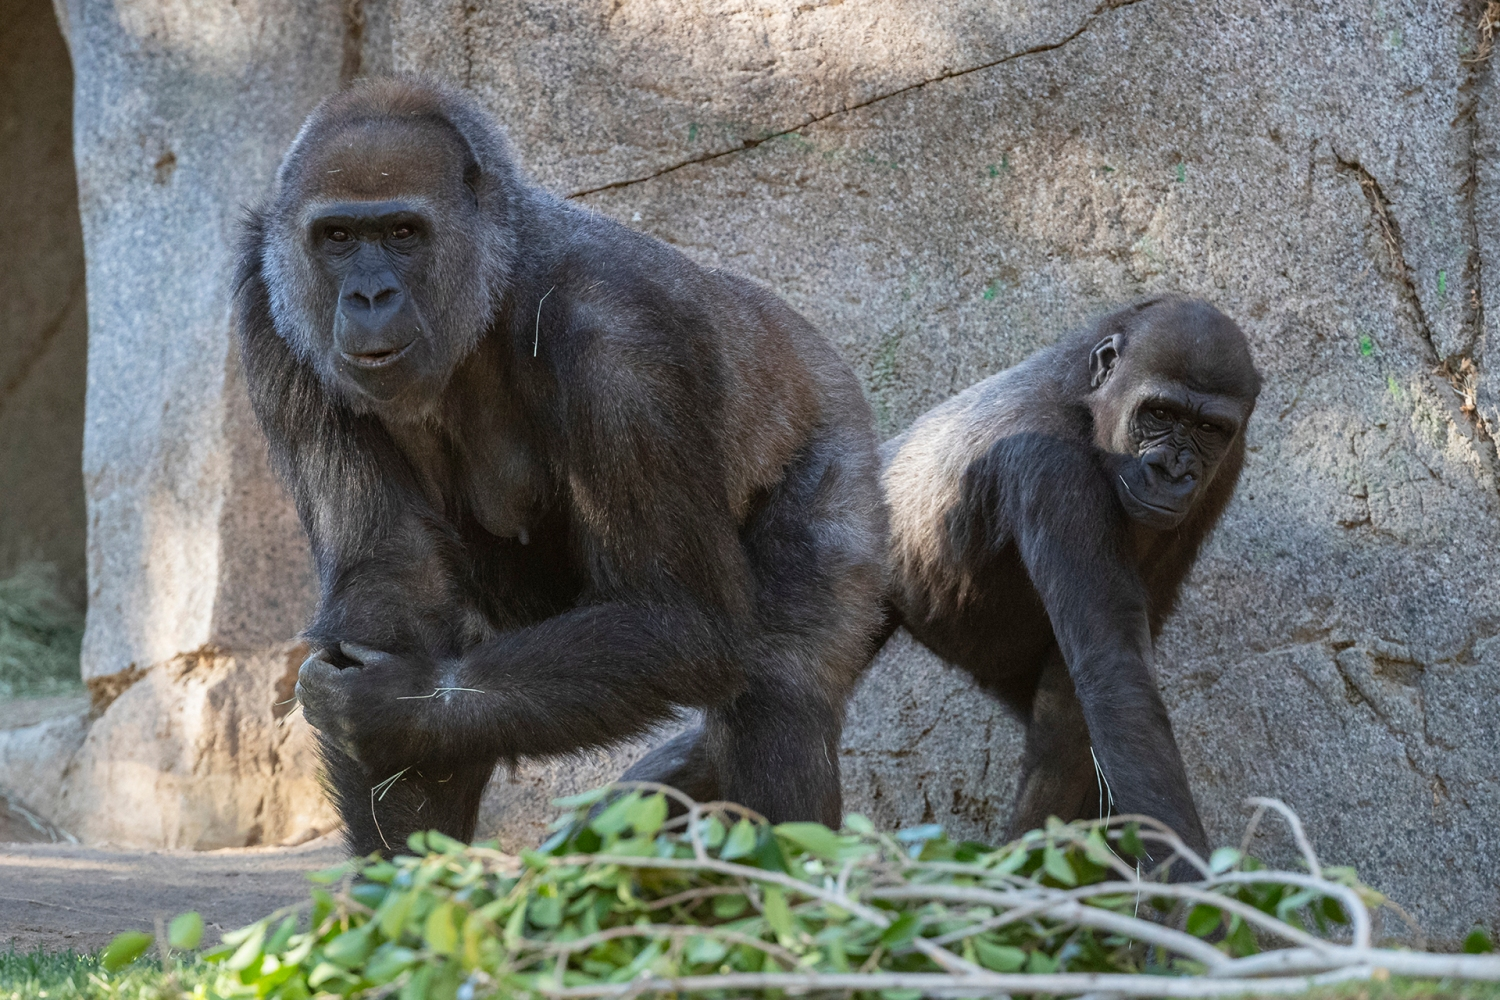 9 Great Apes At San Diego Zoo Become First Non-Humans To Receive A COVID Vaccine